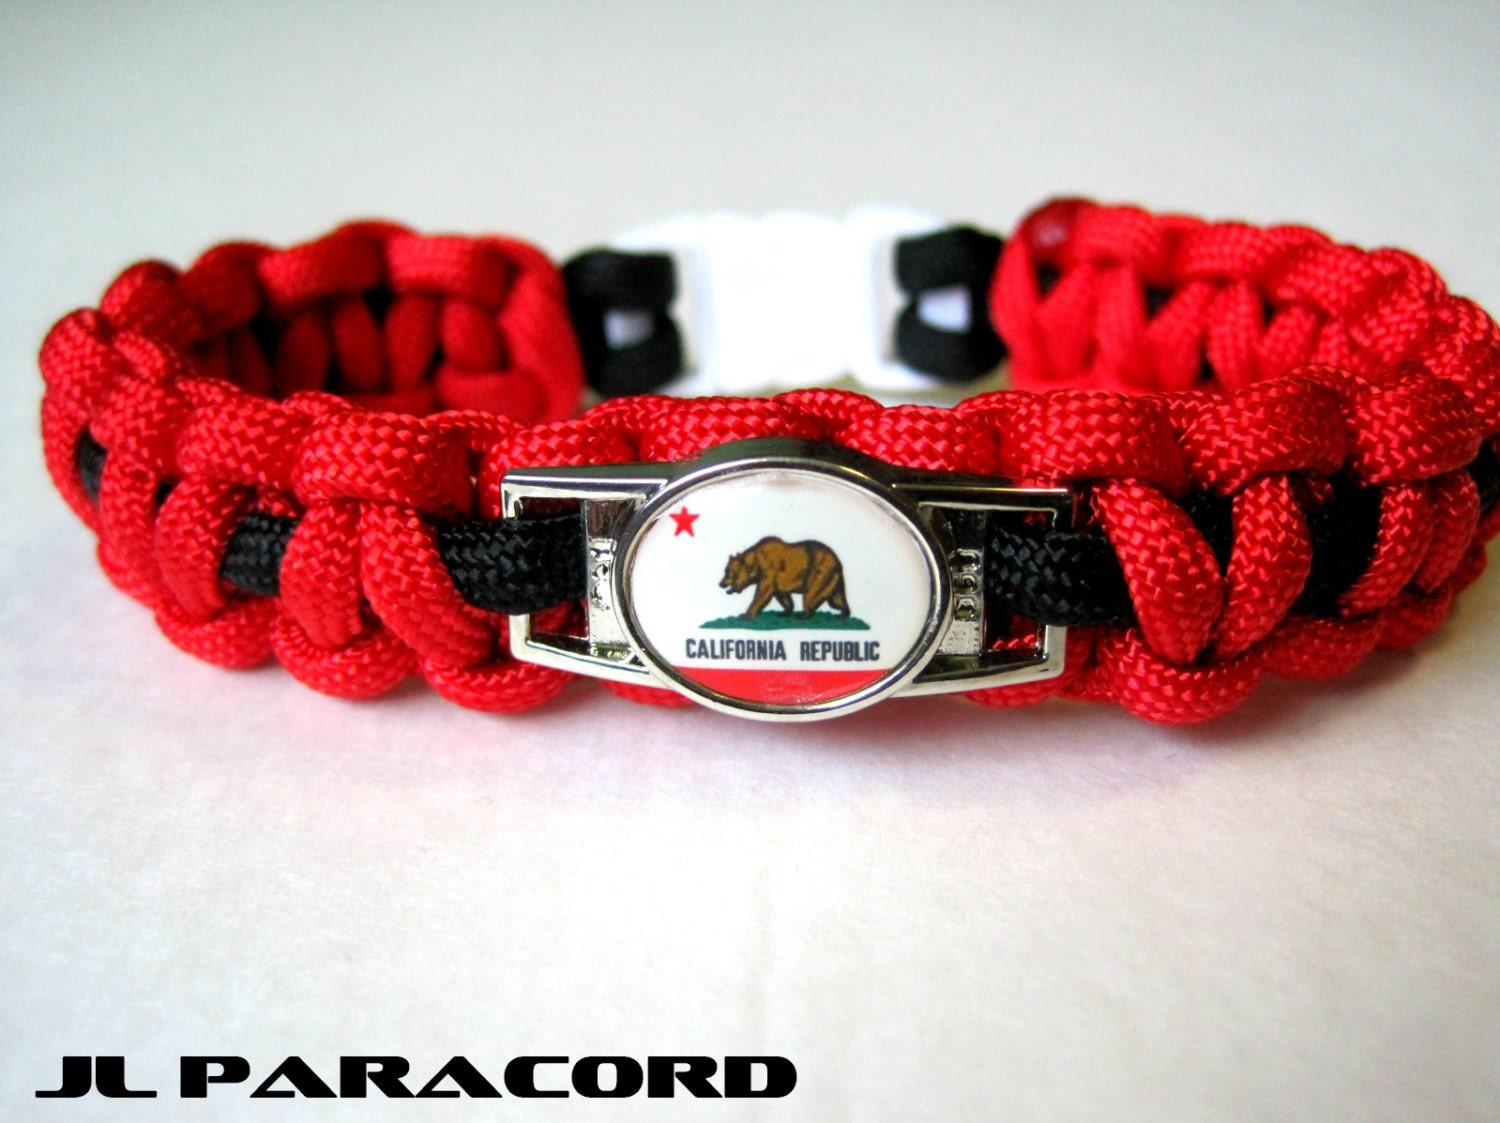 california paracord charm bracelet by jlparacordgear on etsy